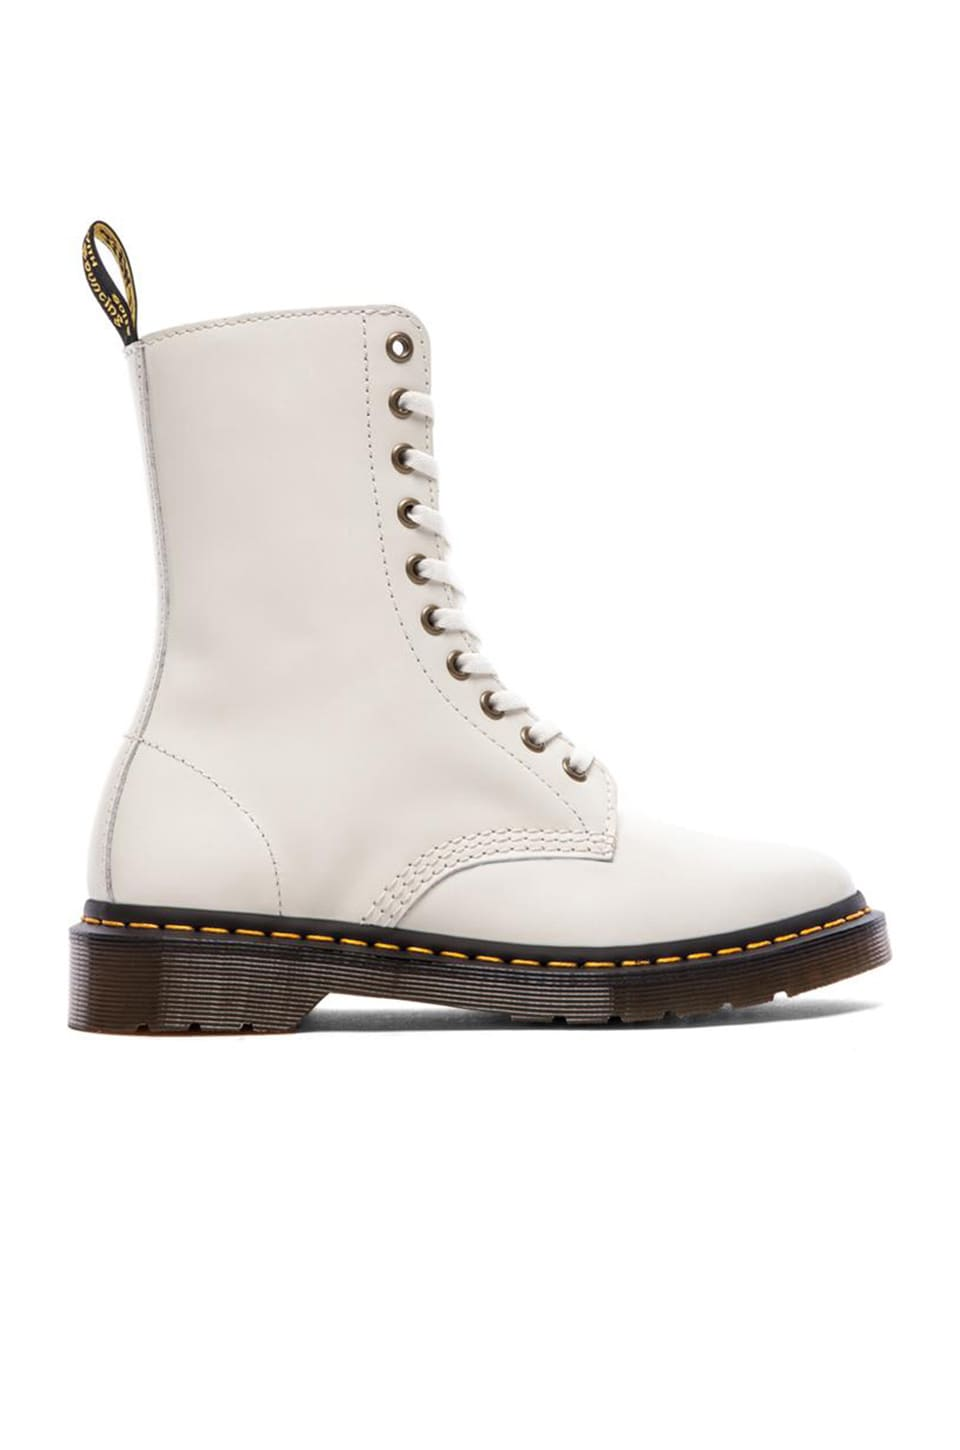 Dr. Martens Alix 10-Eye Zip Boot in Off White